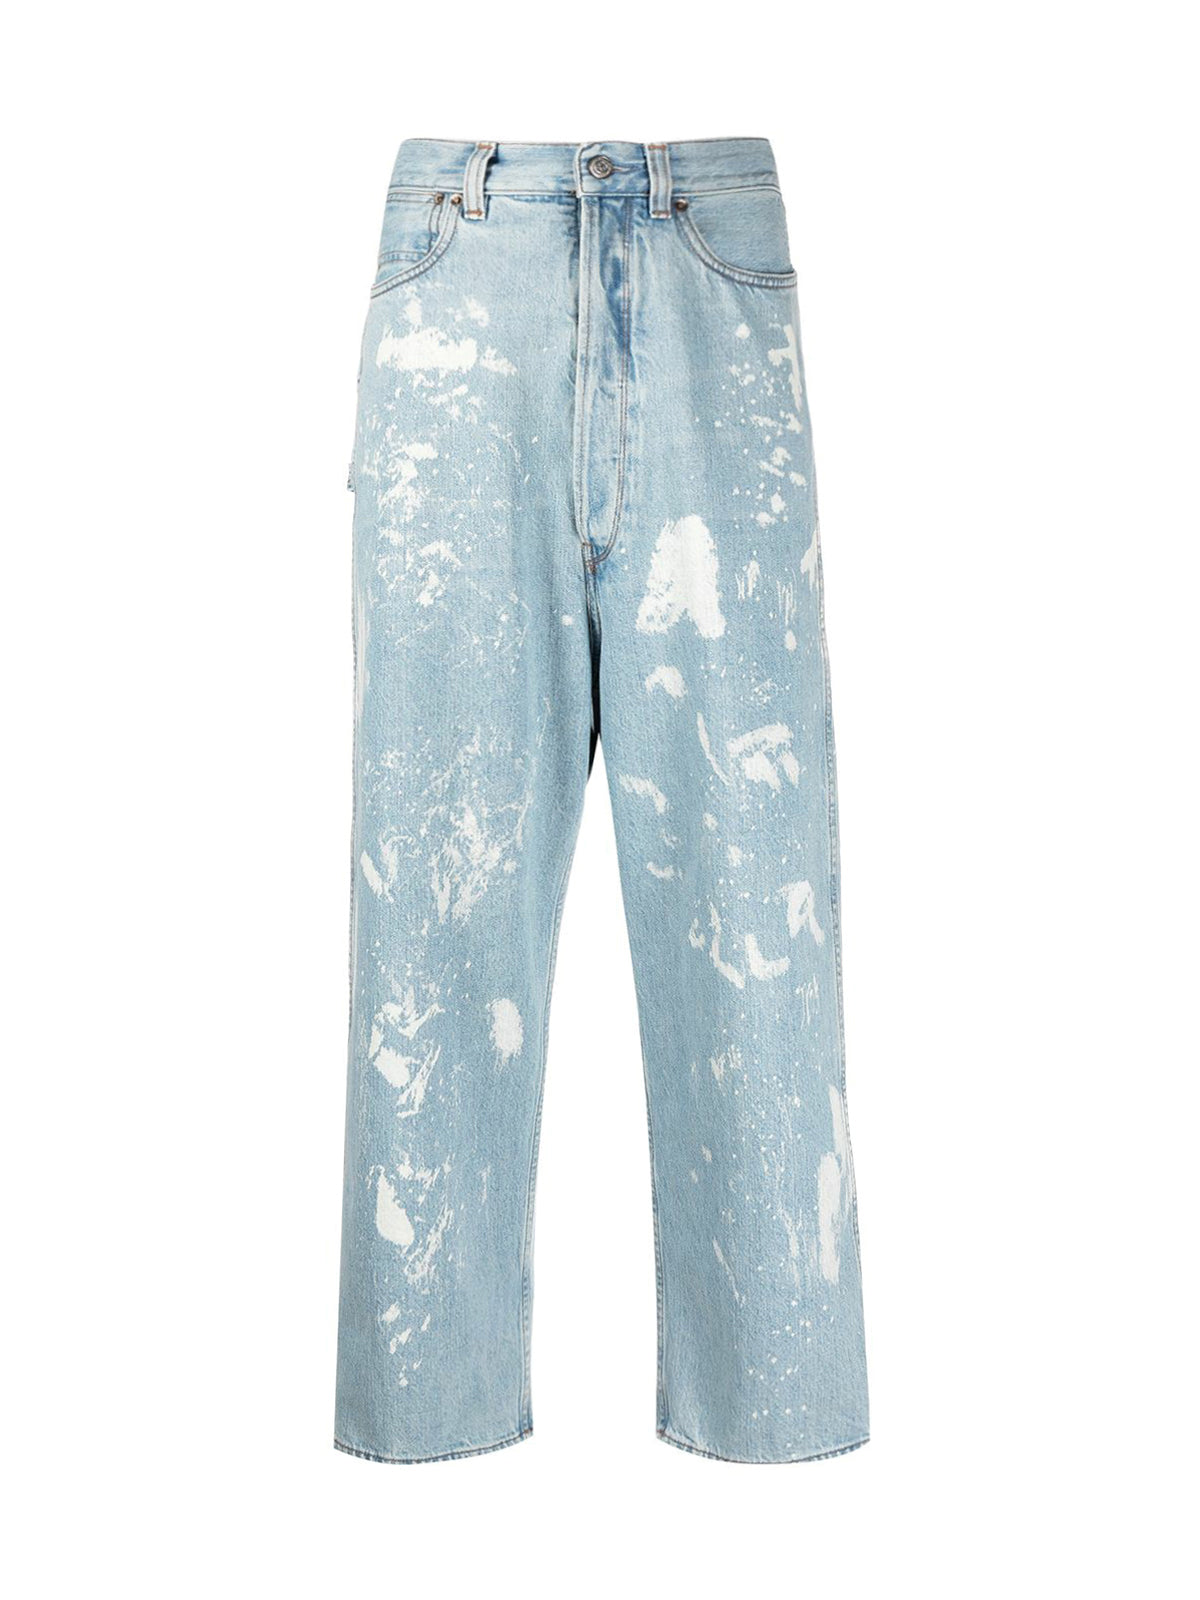 paint-splattered straight-leg jeans